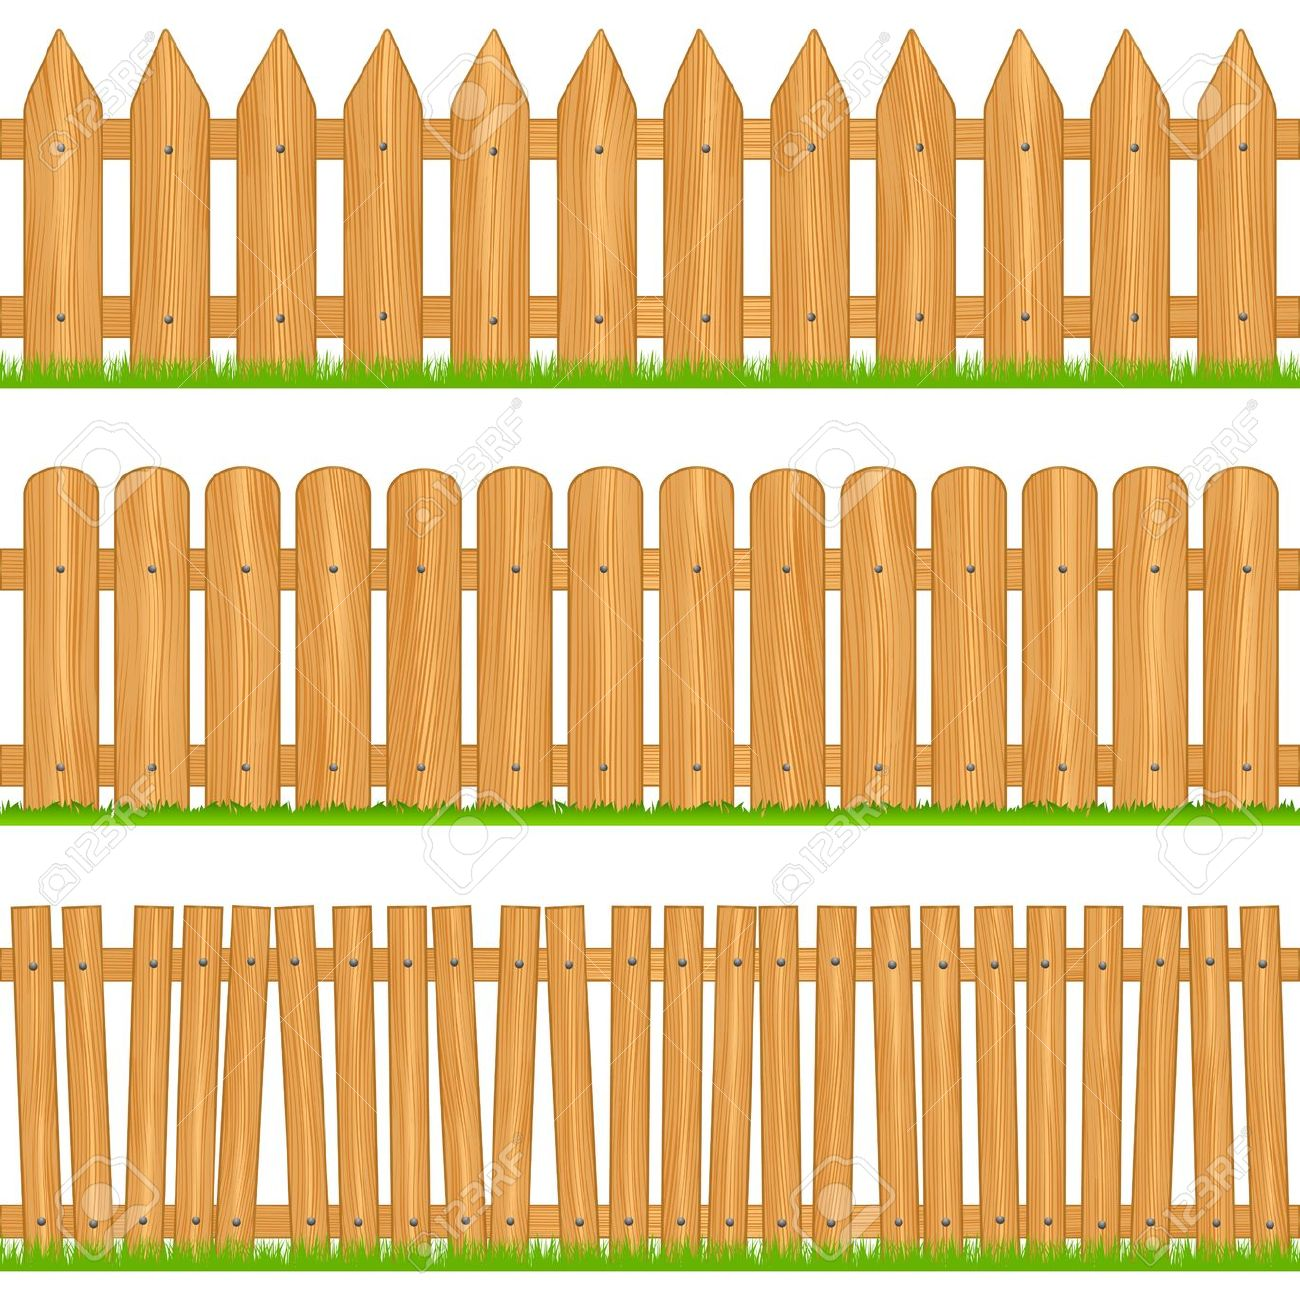 Wooden Fences Royalty Free Cliparts, Vectors, And Stock.